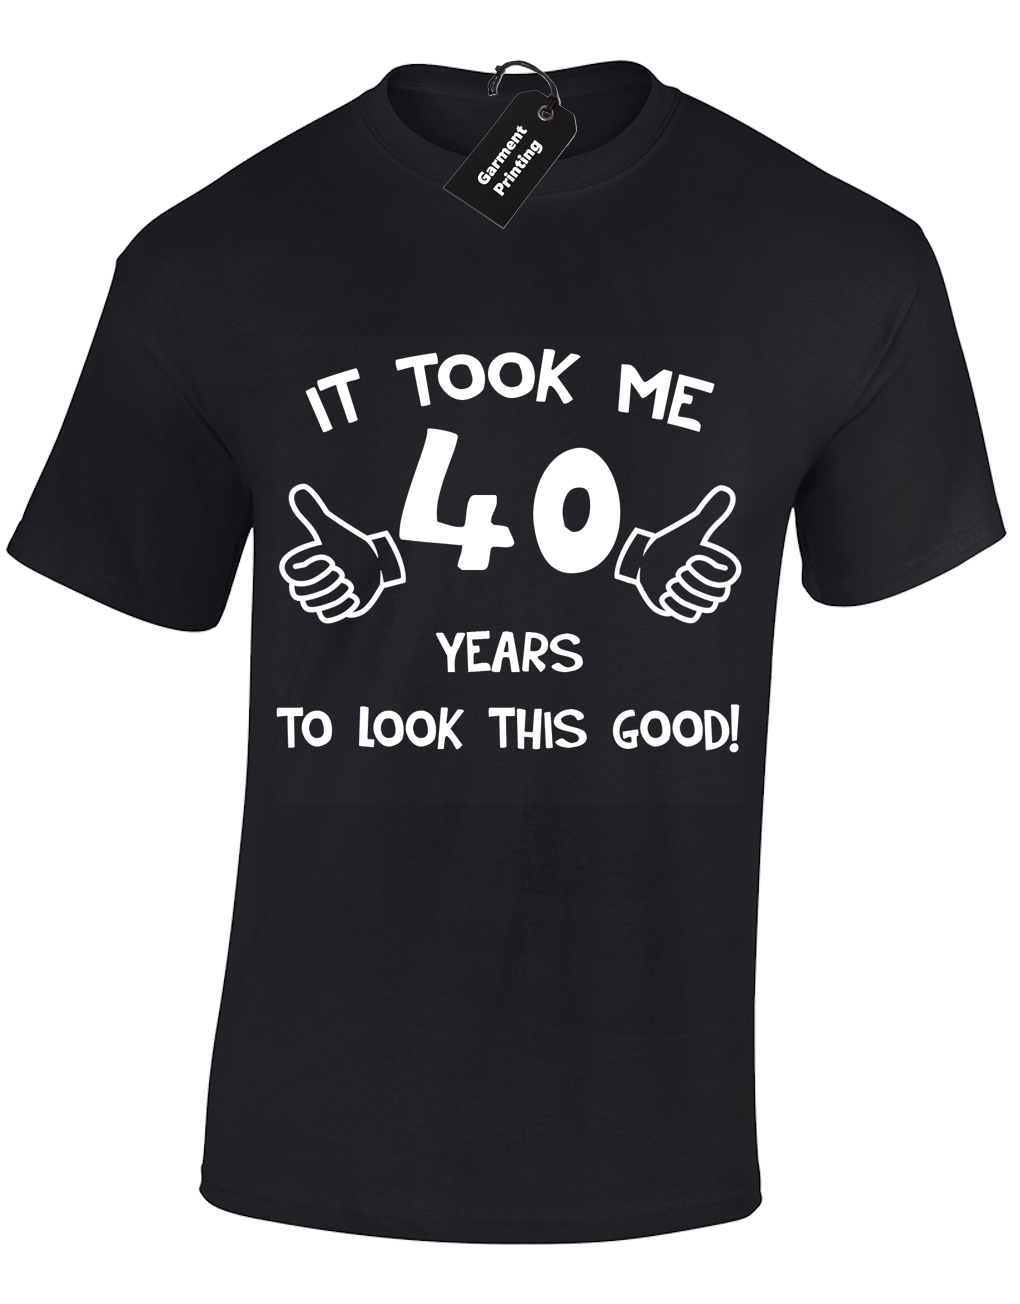 IT TOOK ME 40 YEARS <font><b>MENS</b></font> T SHIRT FUNNY GIFT <font><b>IDEA</b></font> TOP PRESENT <font><b>40TH</b></font> <font><b>BIRTHDAY</b></font> S-3XLCool Casual pride t shirt <font><b>men</b></font> Unisex New Fashion image